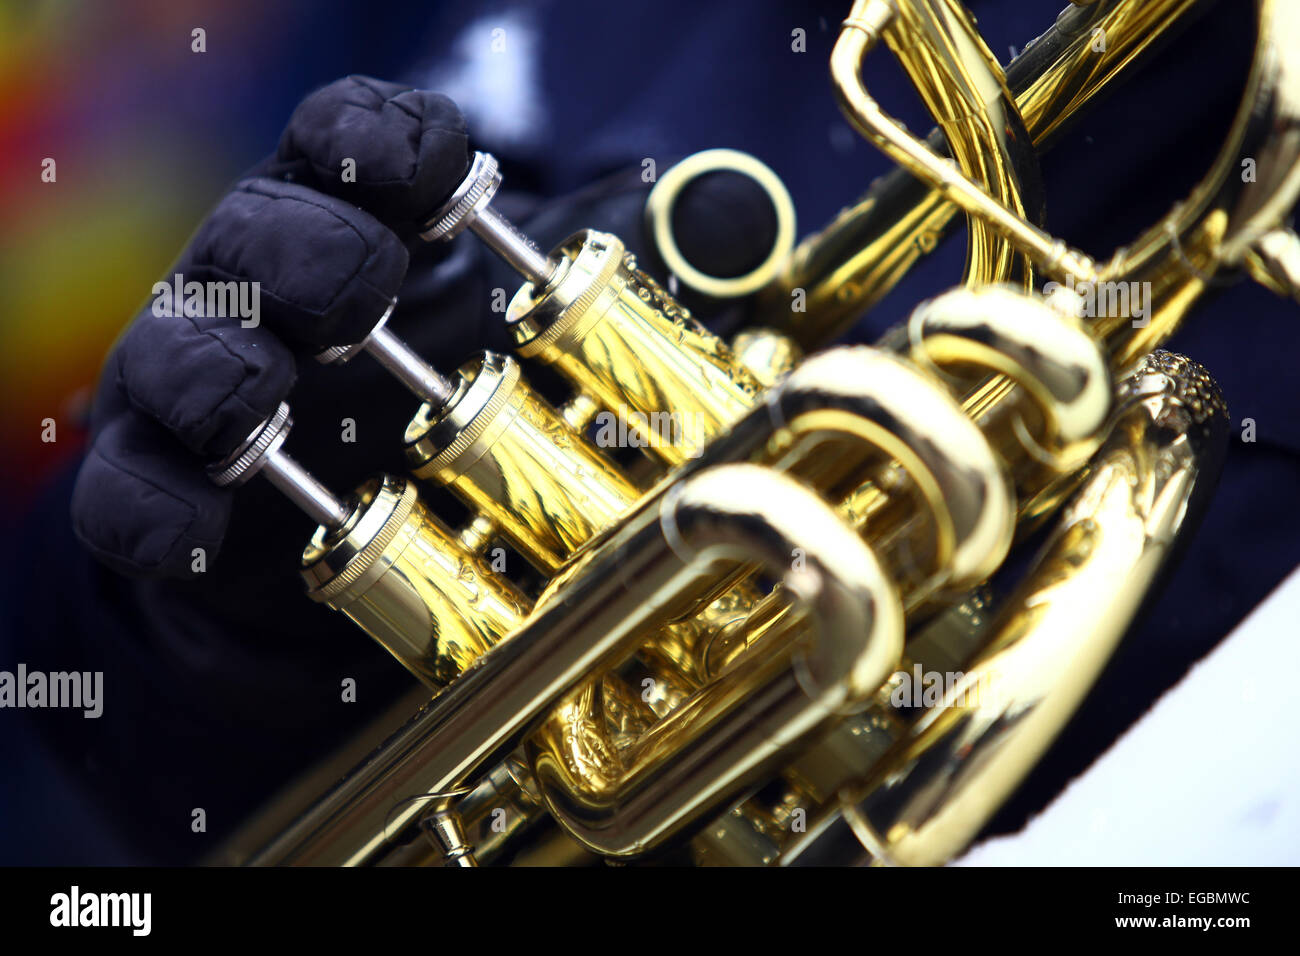 Color image of a horn being played on a snowy day. - Stock Image